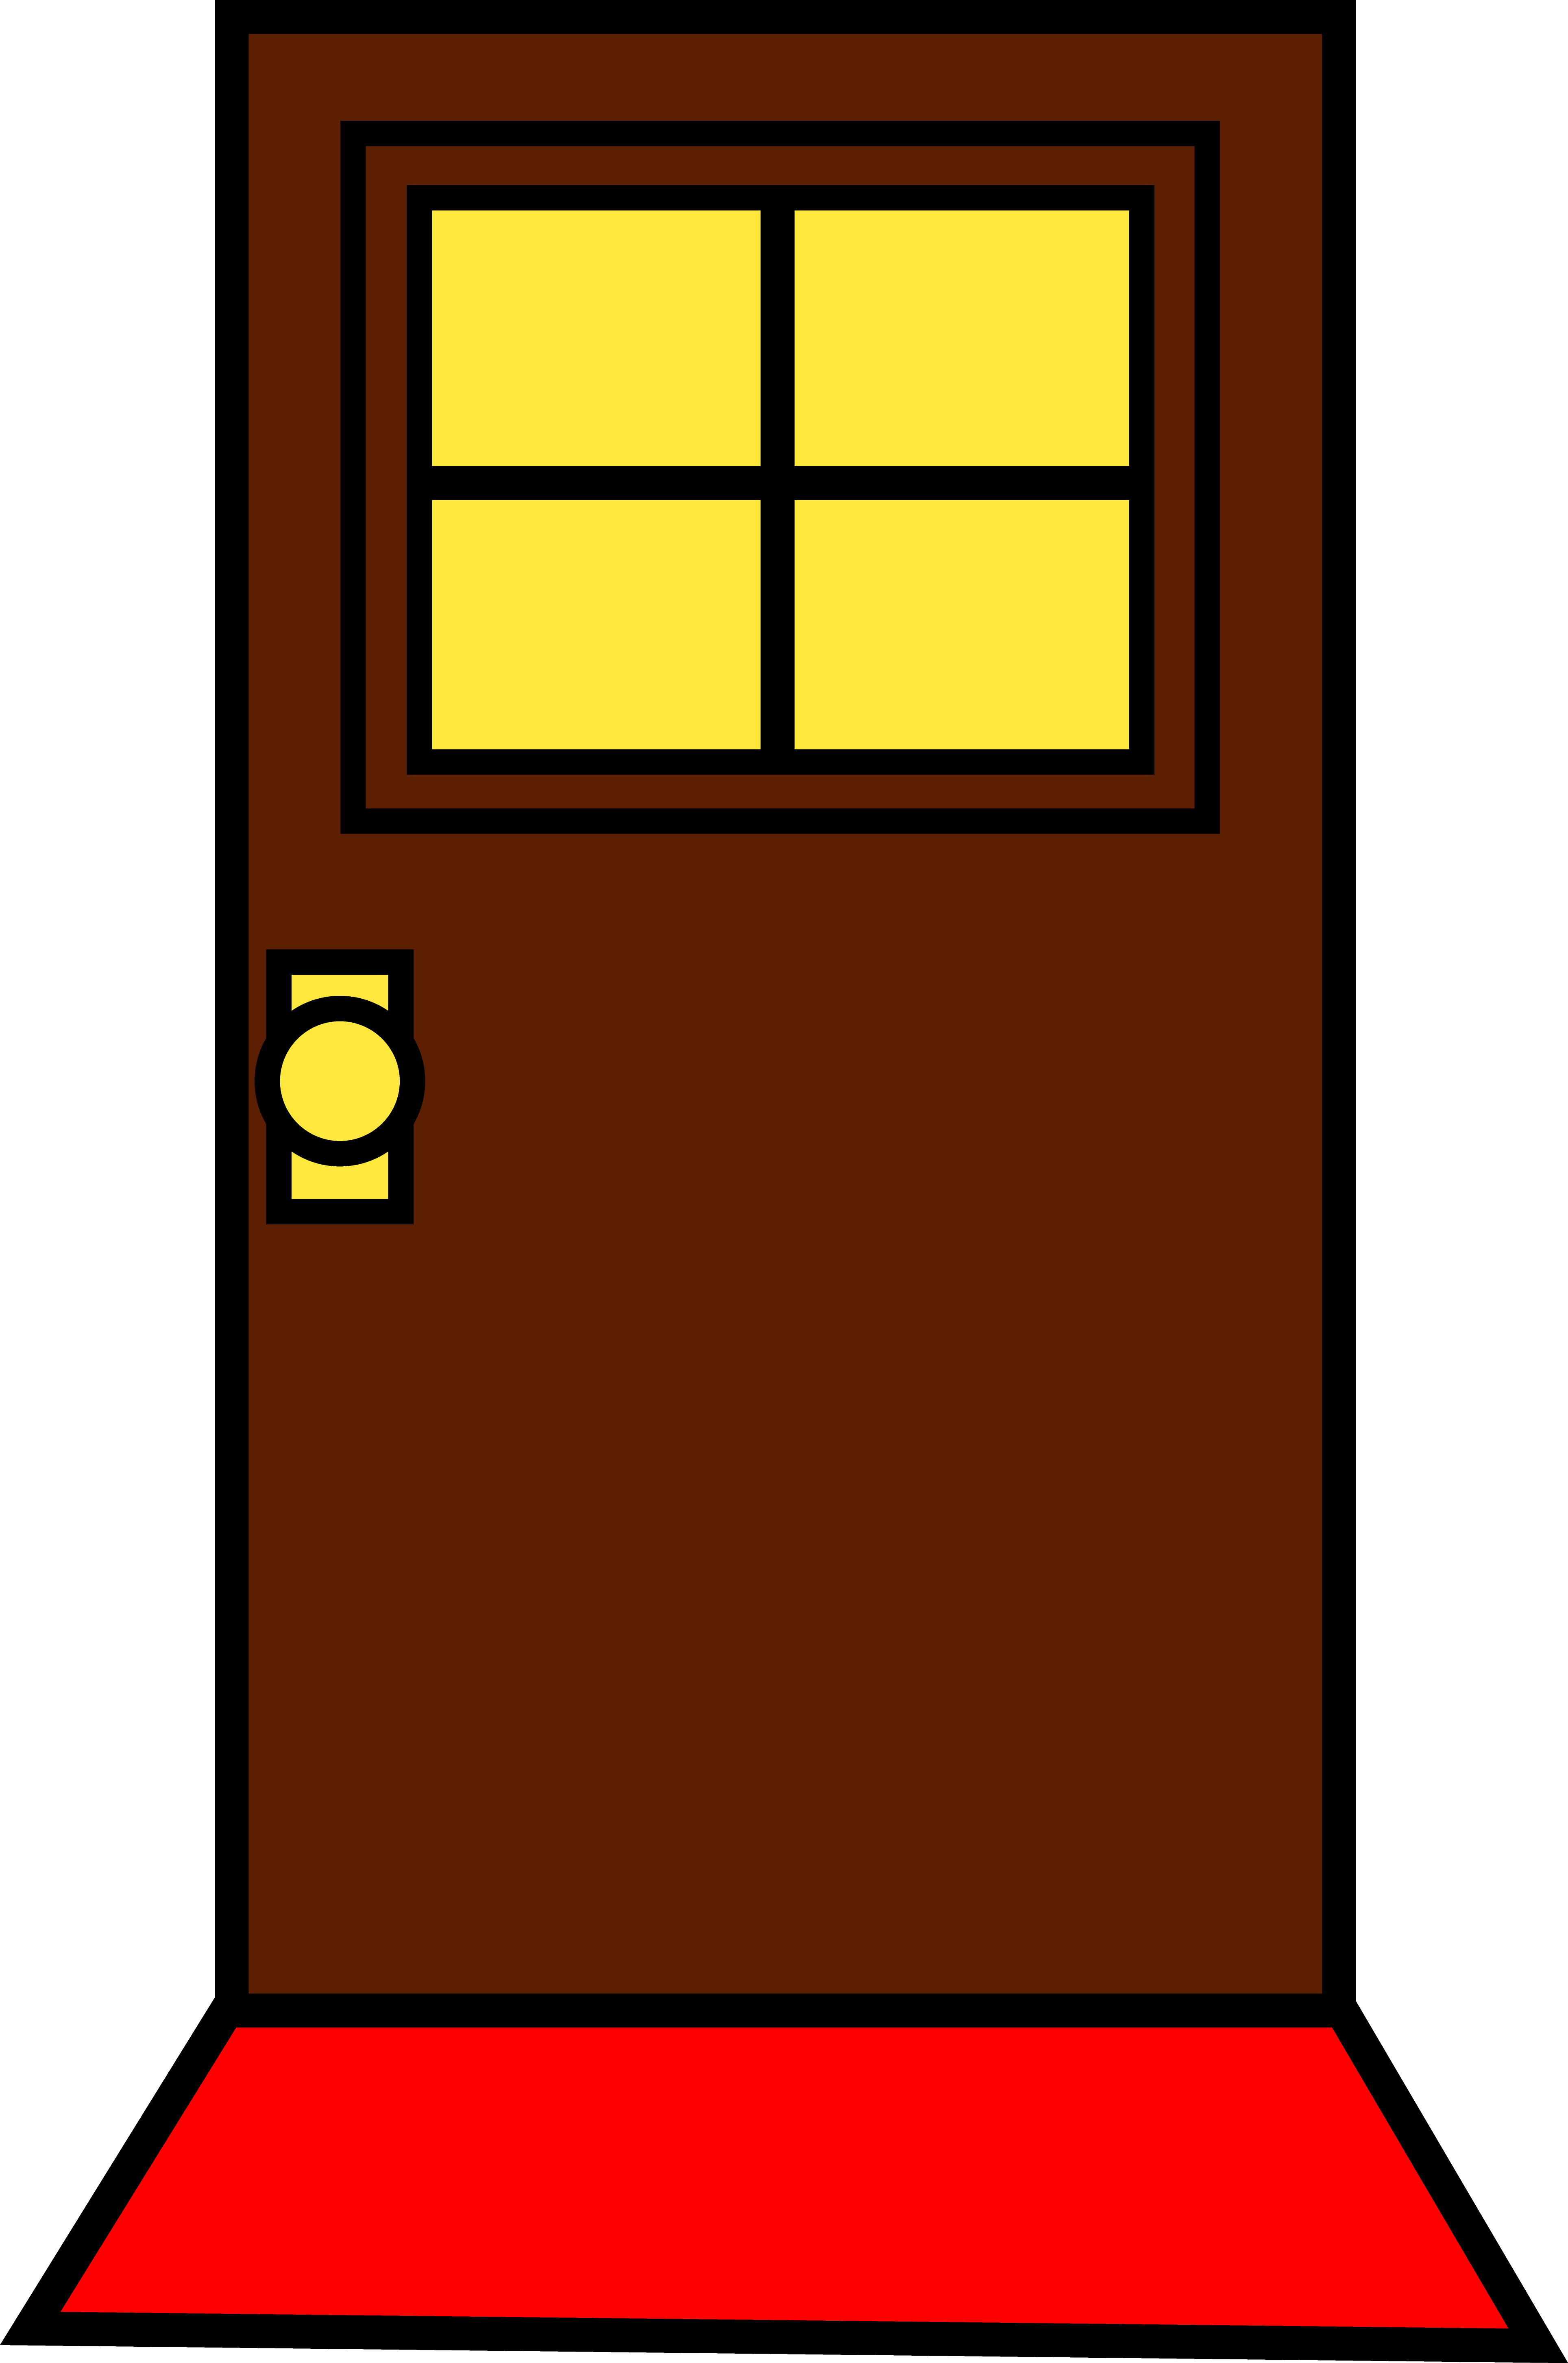 Open door clipart clipart suggest - Locked door clipart ...